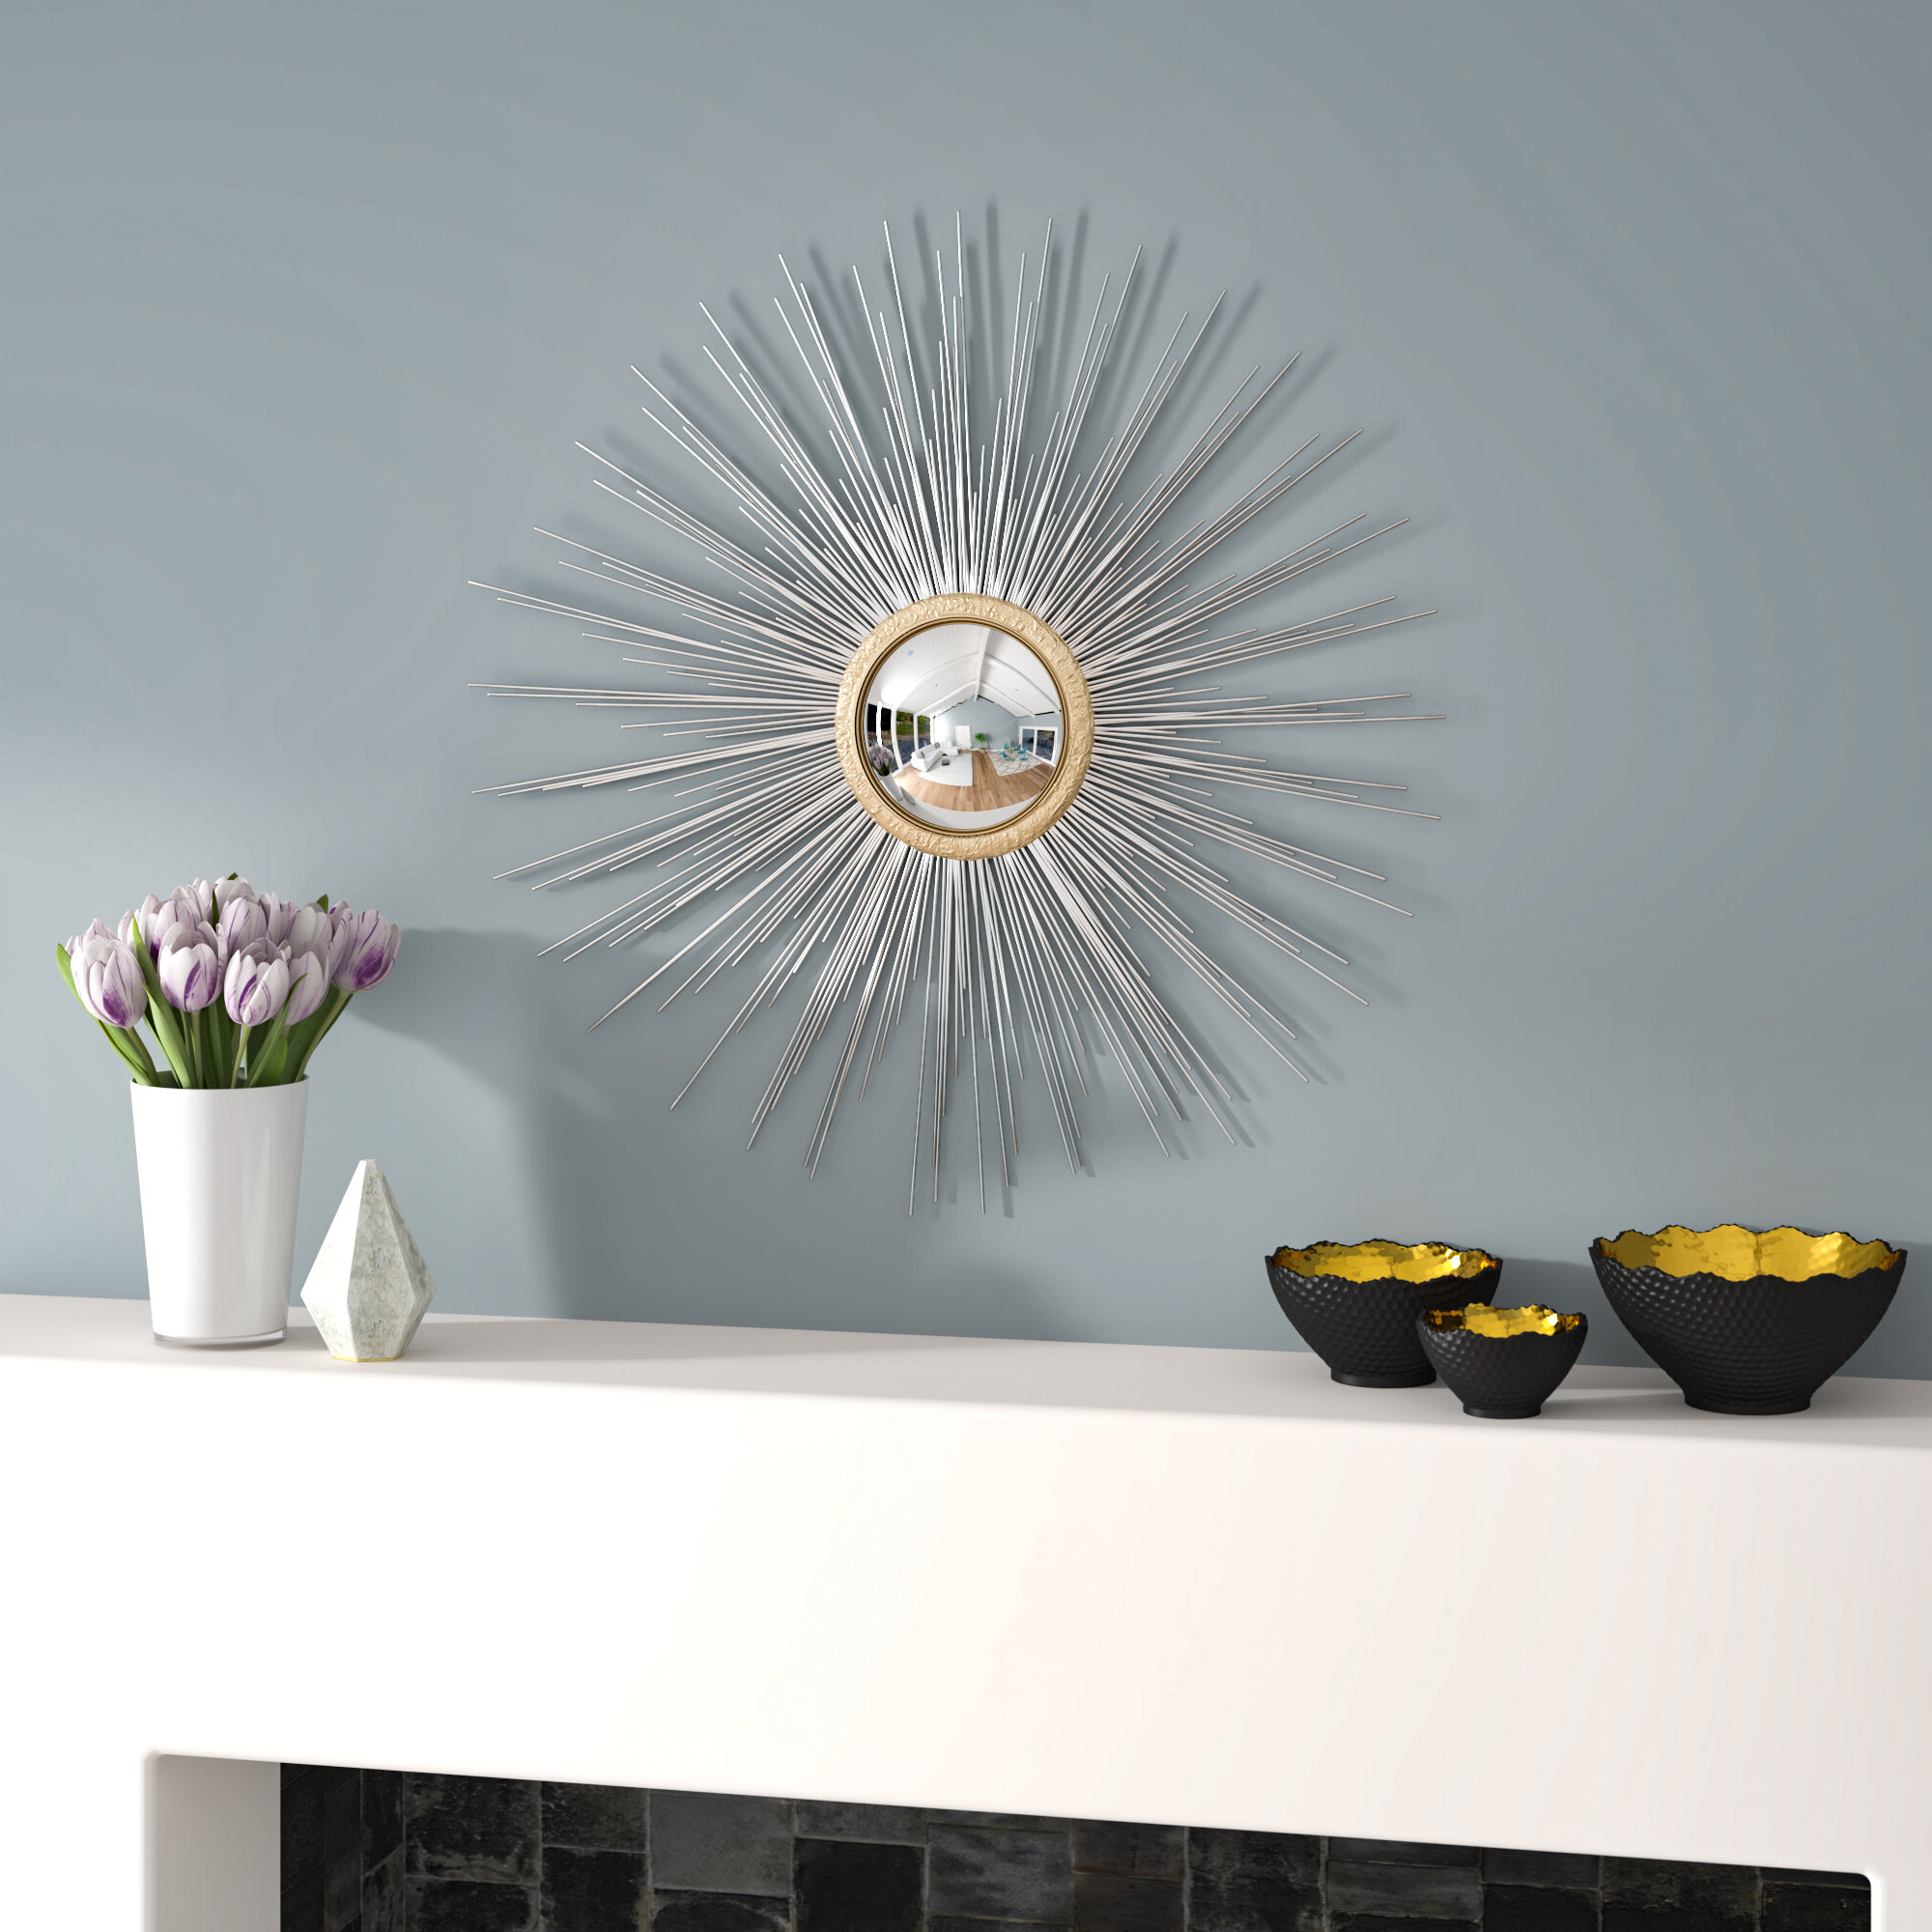 2020 Starburst Wall Decor By Willa Arlo Interiors With Latitude Run Starburst Silhouette Metal Fisheye Wall Mirror (View 1 of 20)